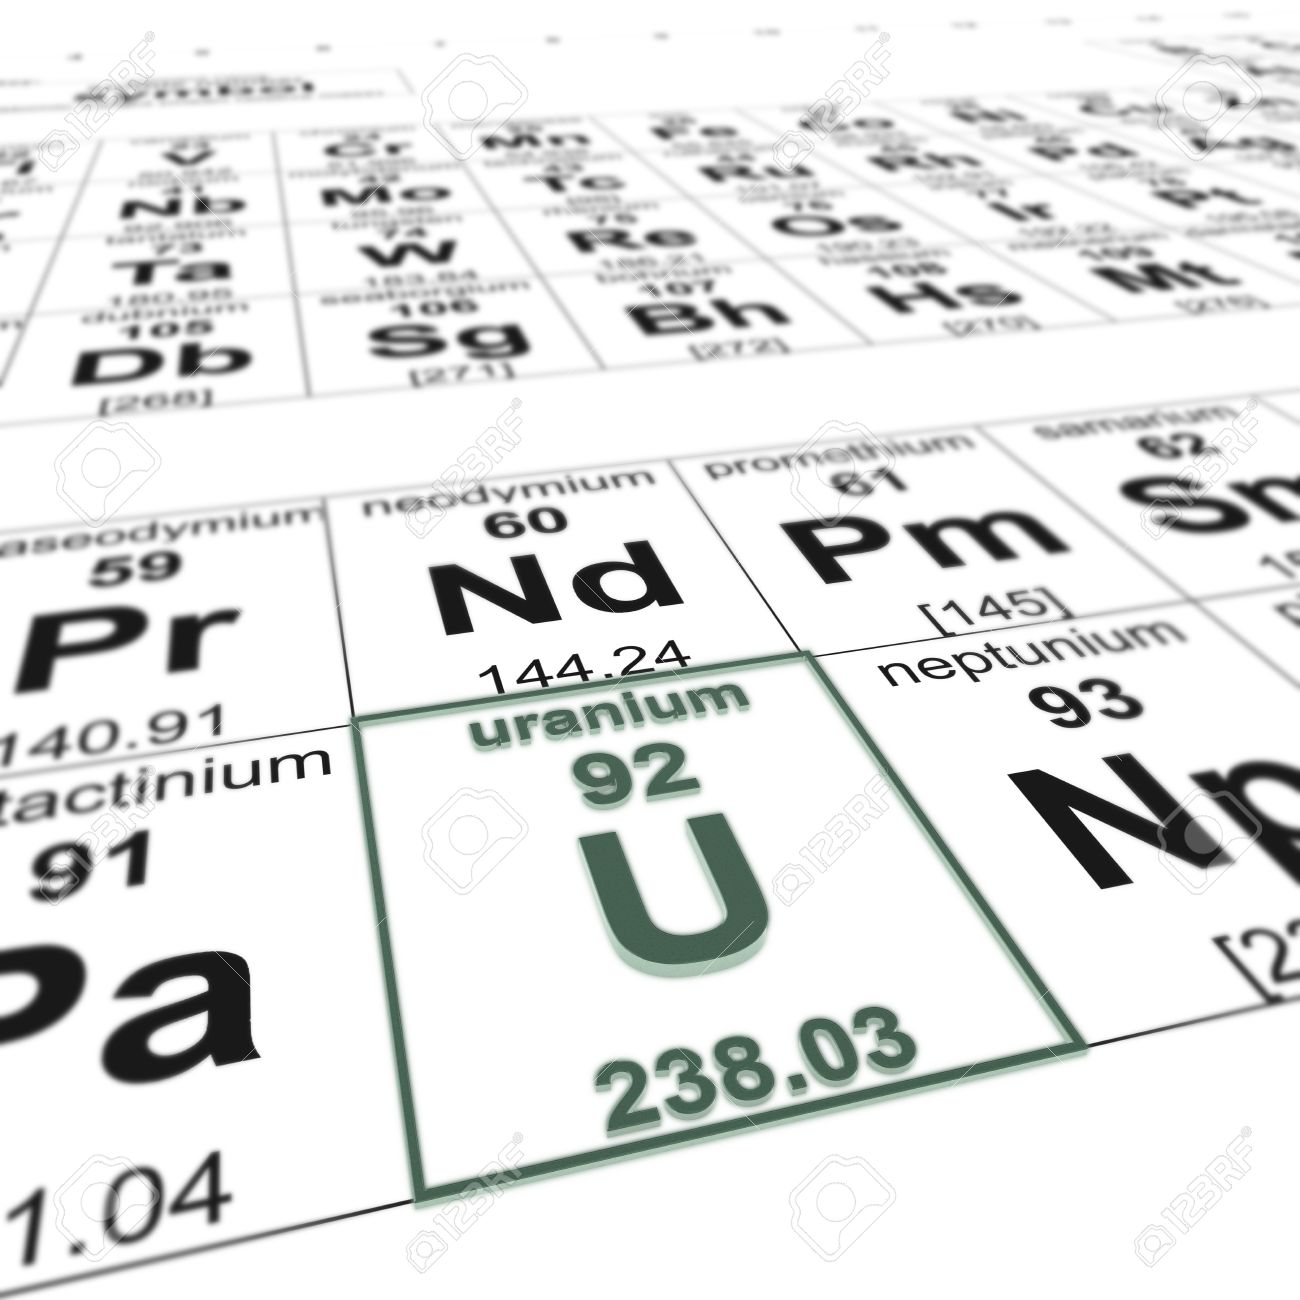 Tabla periodica elemento u choice image periodic table and sample tabla periodica elemento u gallery periodic table and sample with tabla periodica elemento u images periodic urtaz Gallery